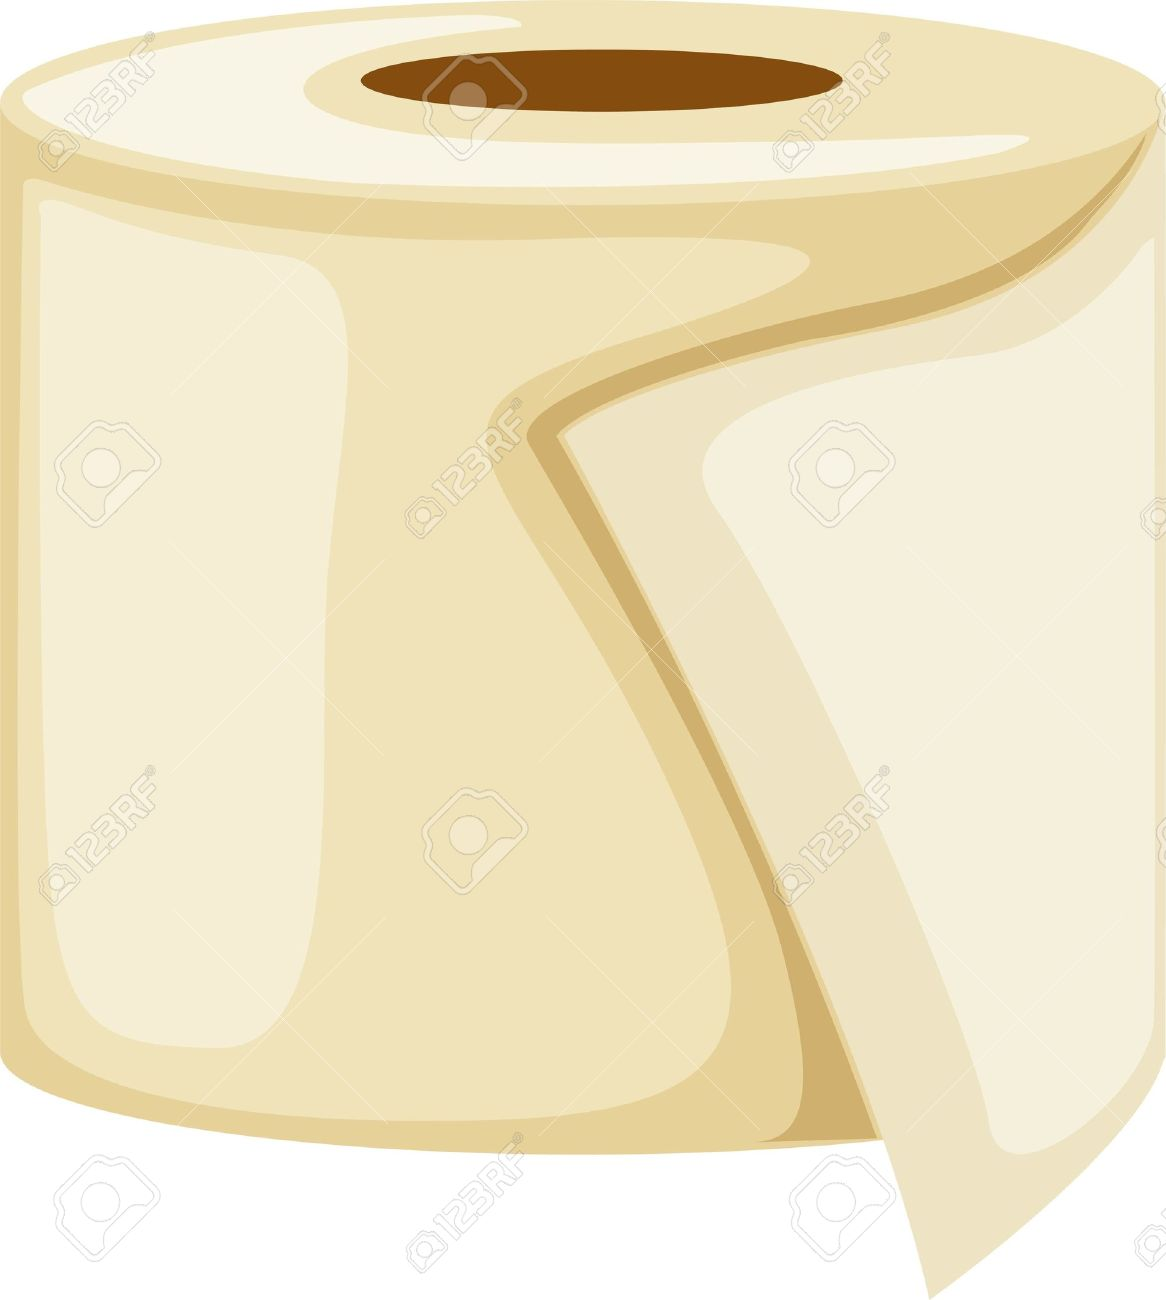 Toilet Paper Roll Royalty Free Cliparts, Vectors, And Stock ...